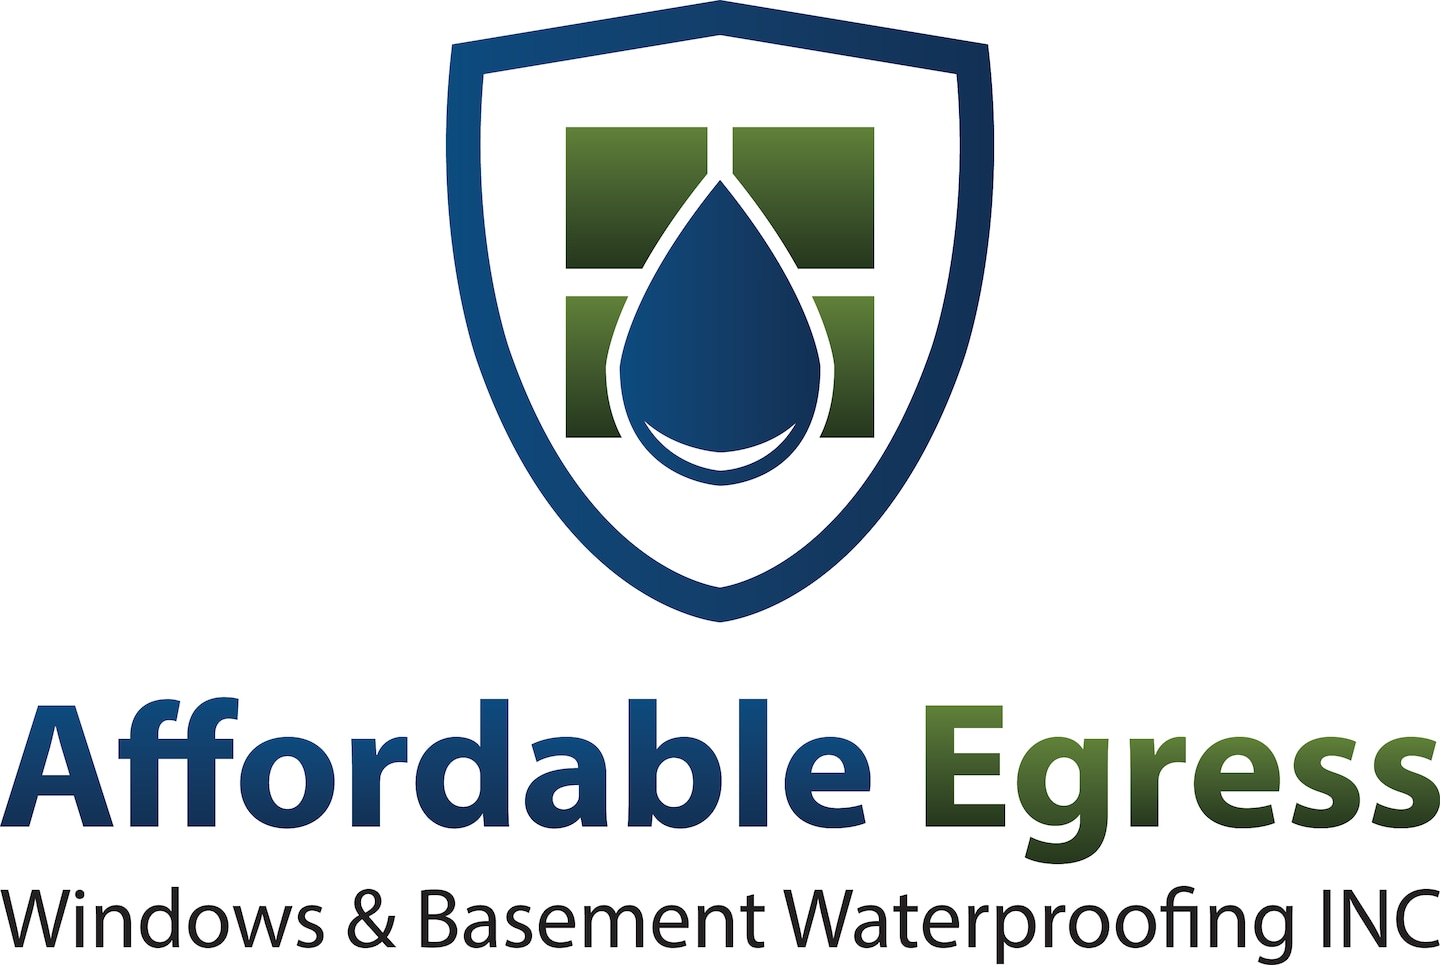 Affordable Egress Windows & Basement Waterproofing